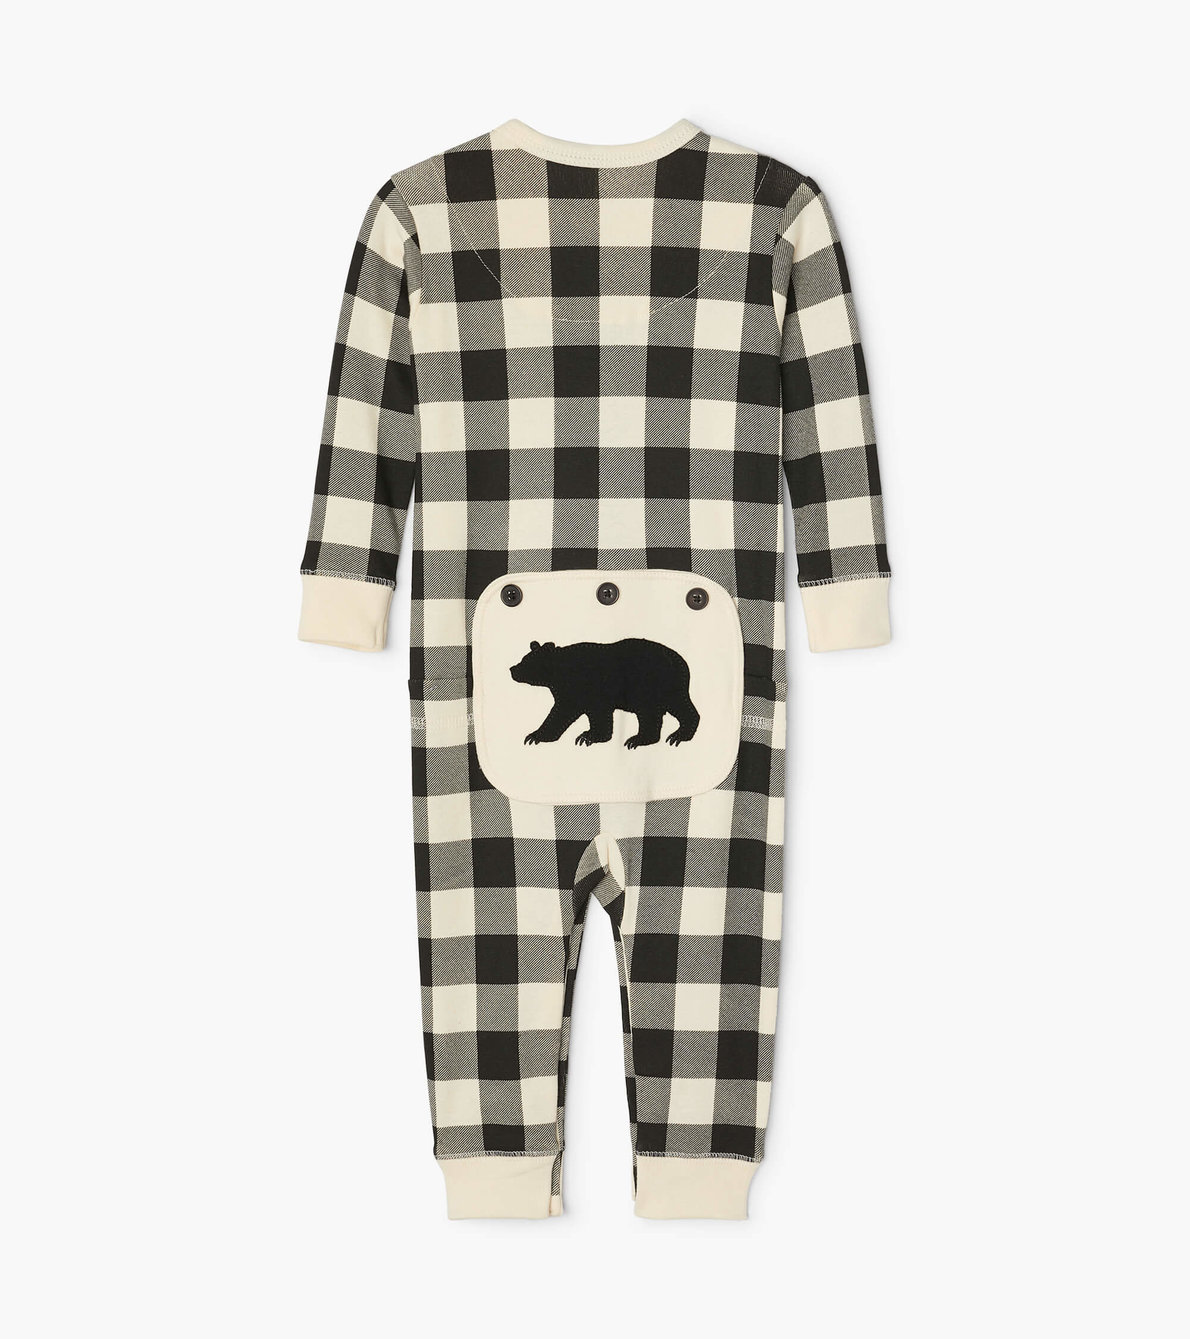 View larger image of Cream Plaid Baby Union Suit